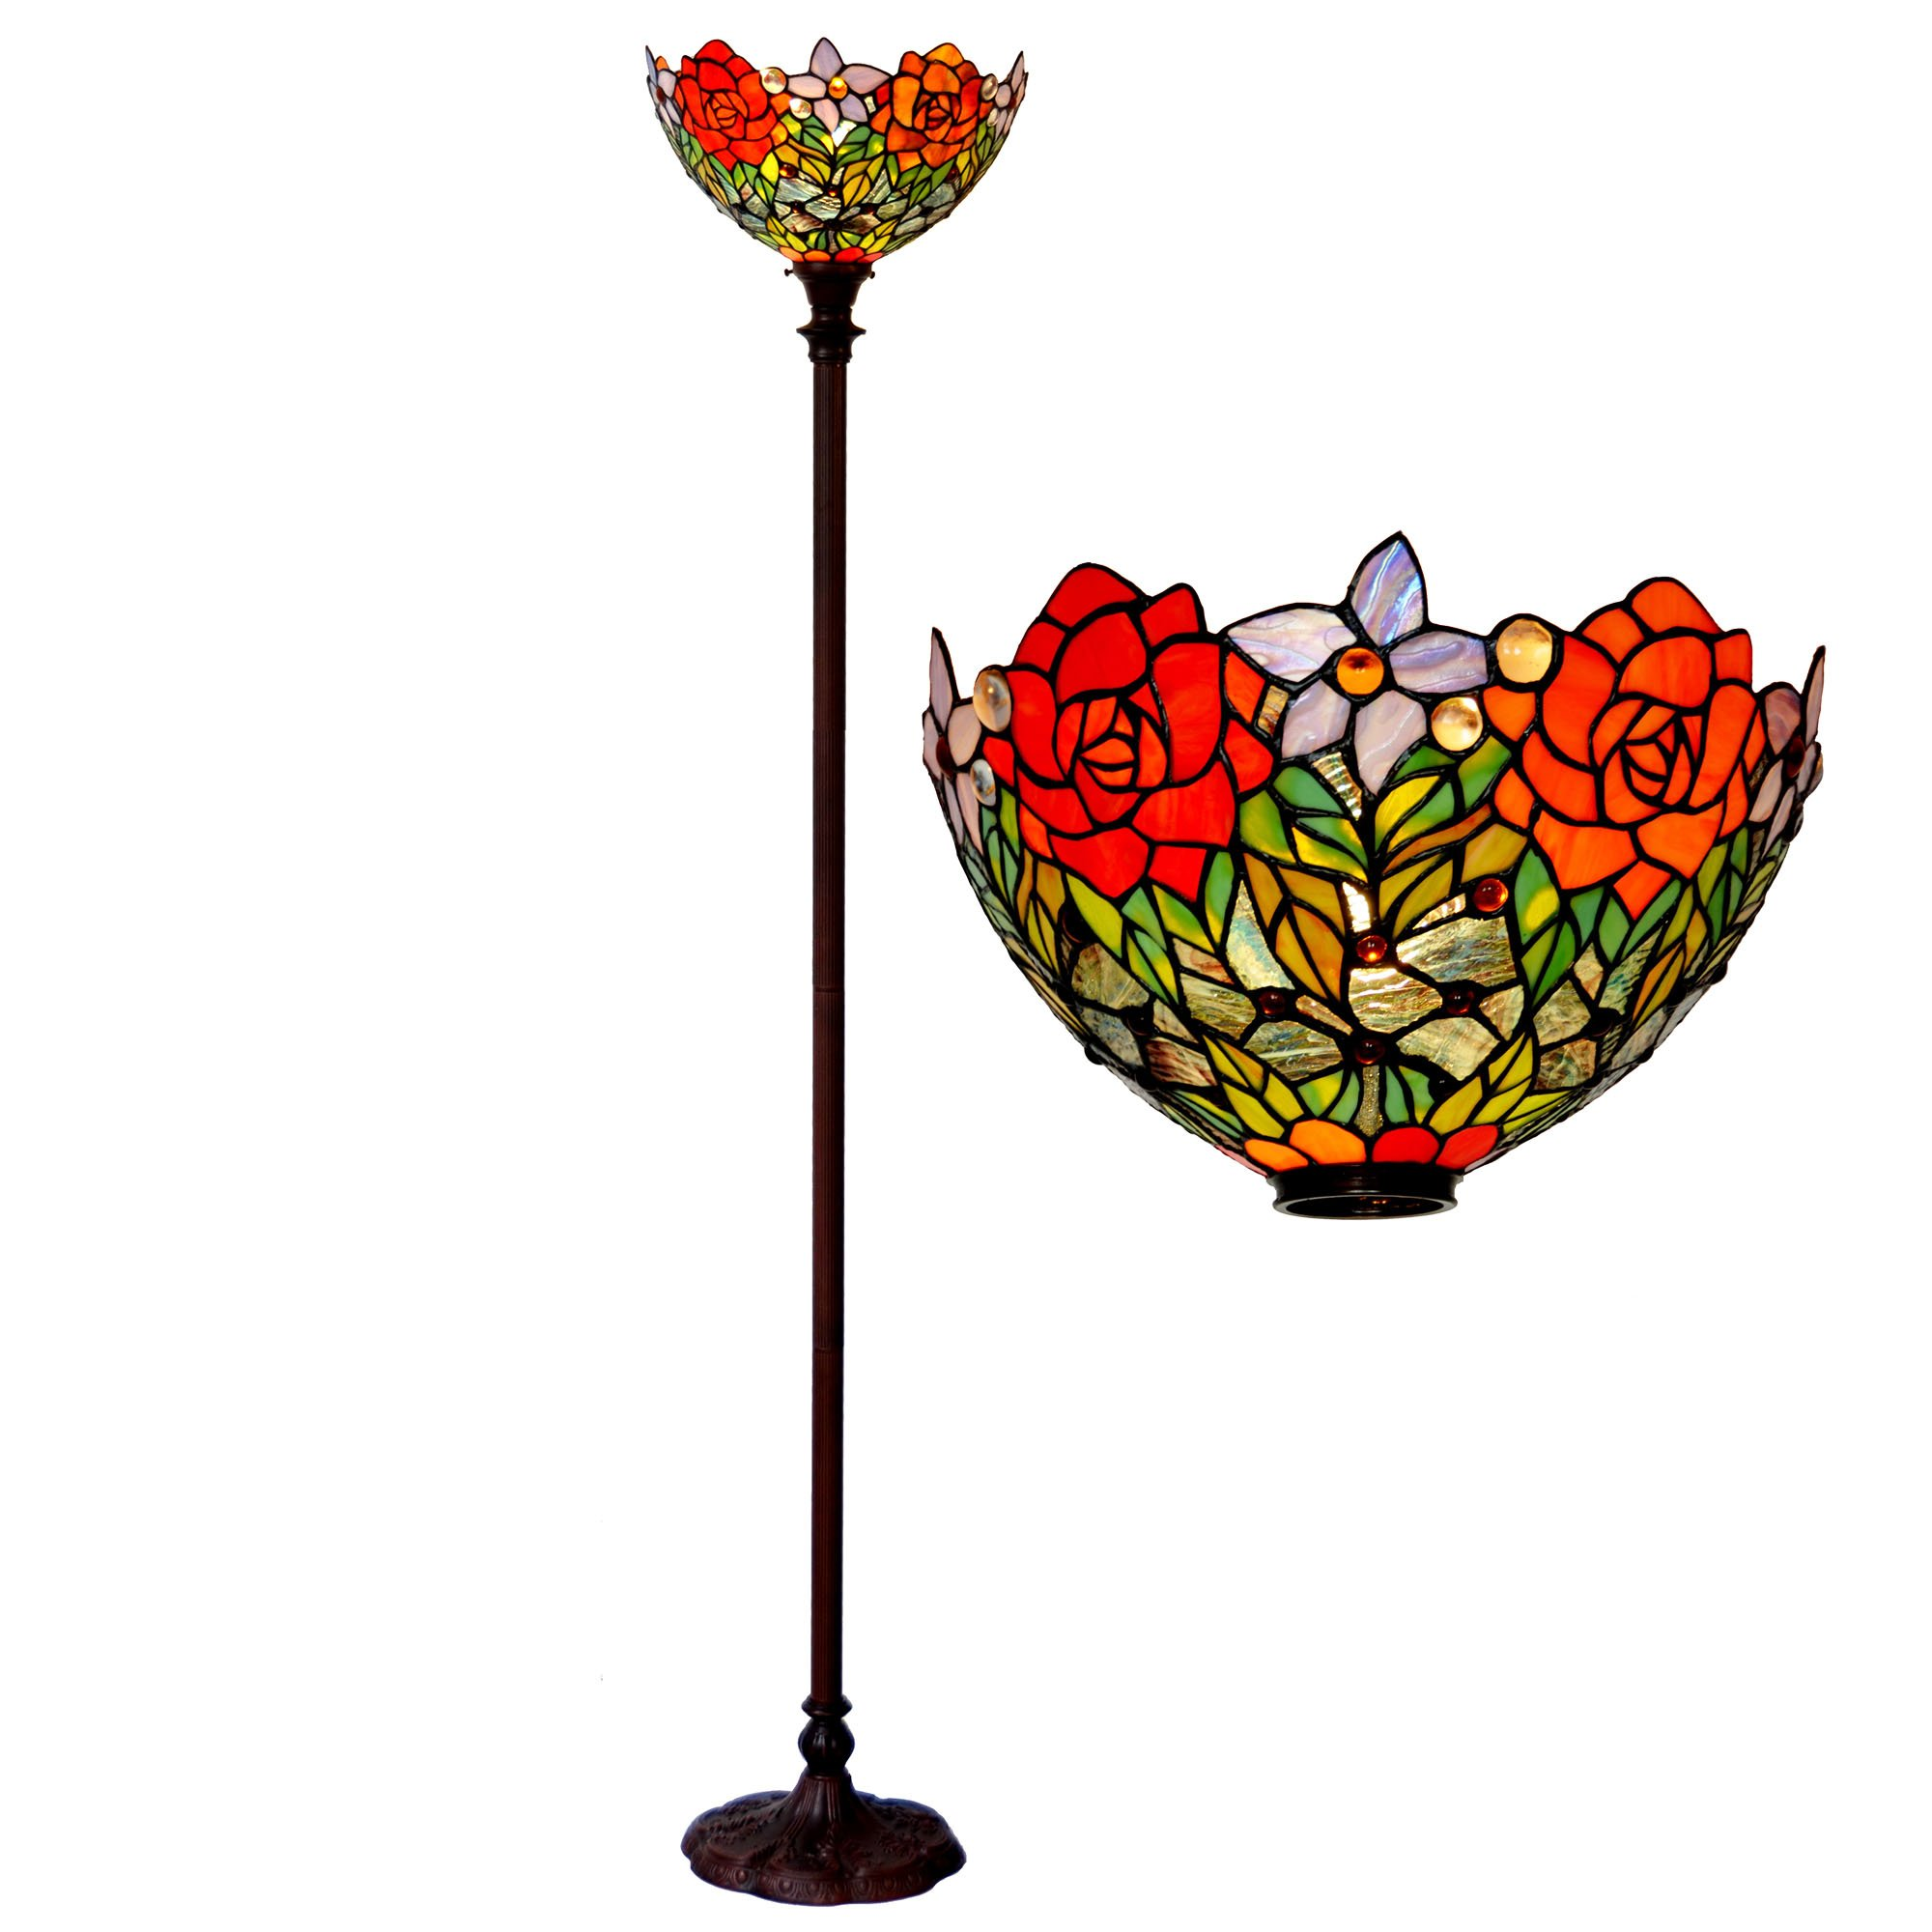 Bieye L10398 15-inches Rose Tiffany Style Stained Glass Torchiere Floor Lamp (Red Rose)